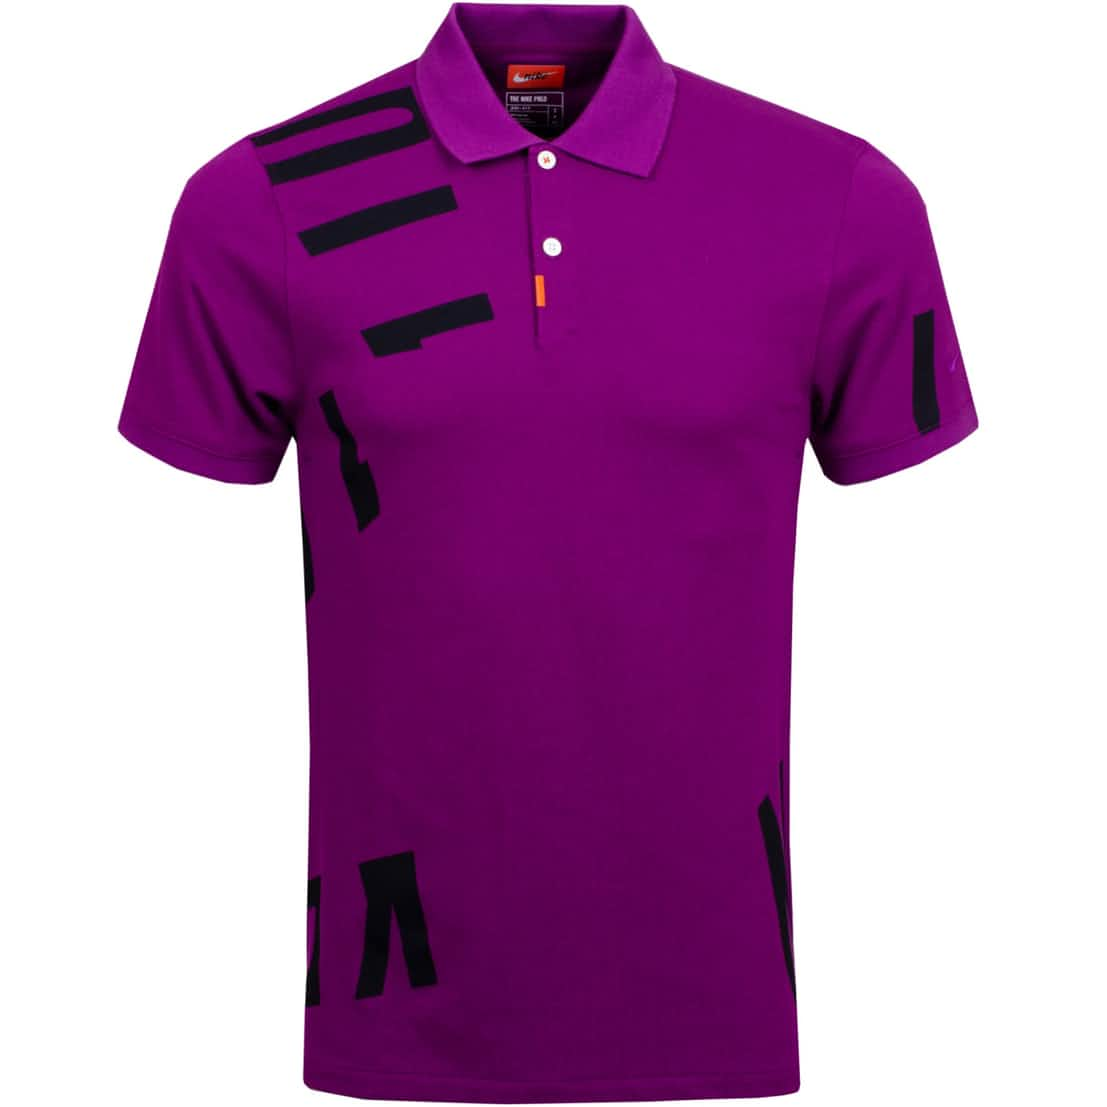 The Golf Hacked Slim Polo Bright Grape - AW20